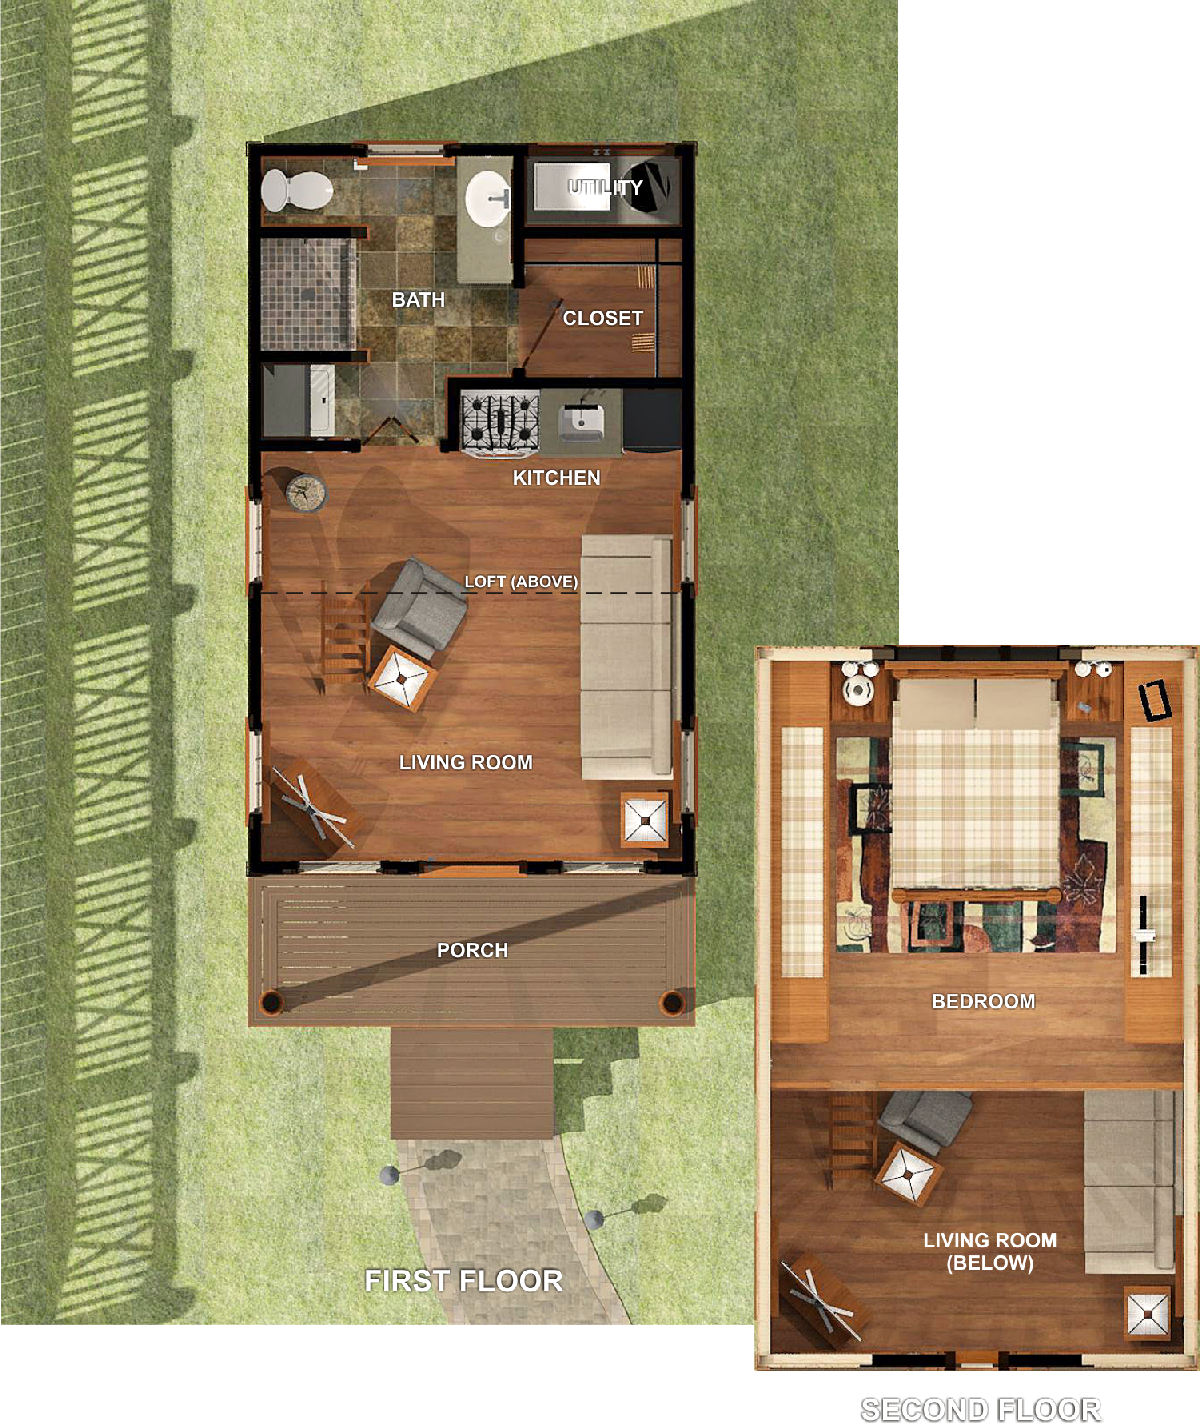 Texas tiny homes plan 448 Blueprints for sale